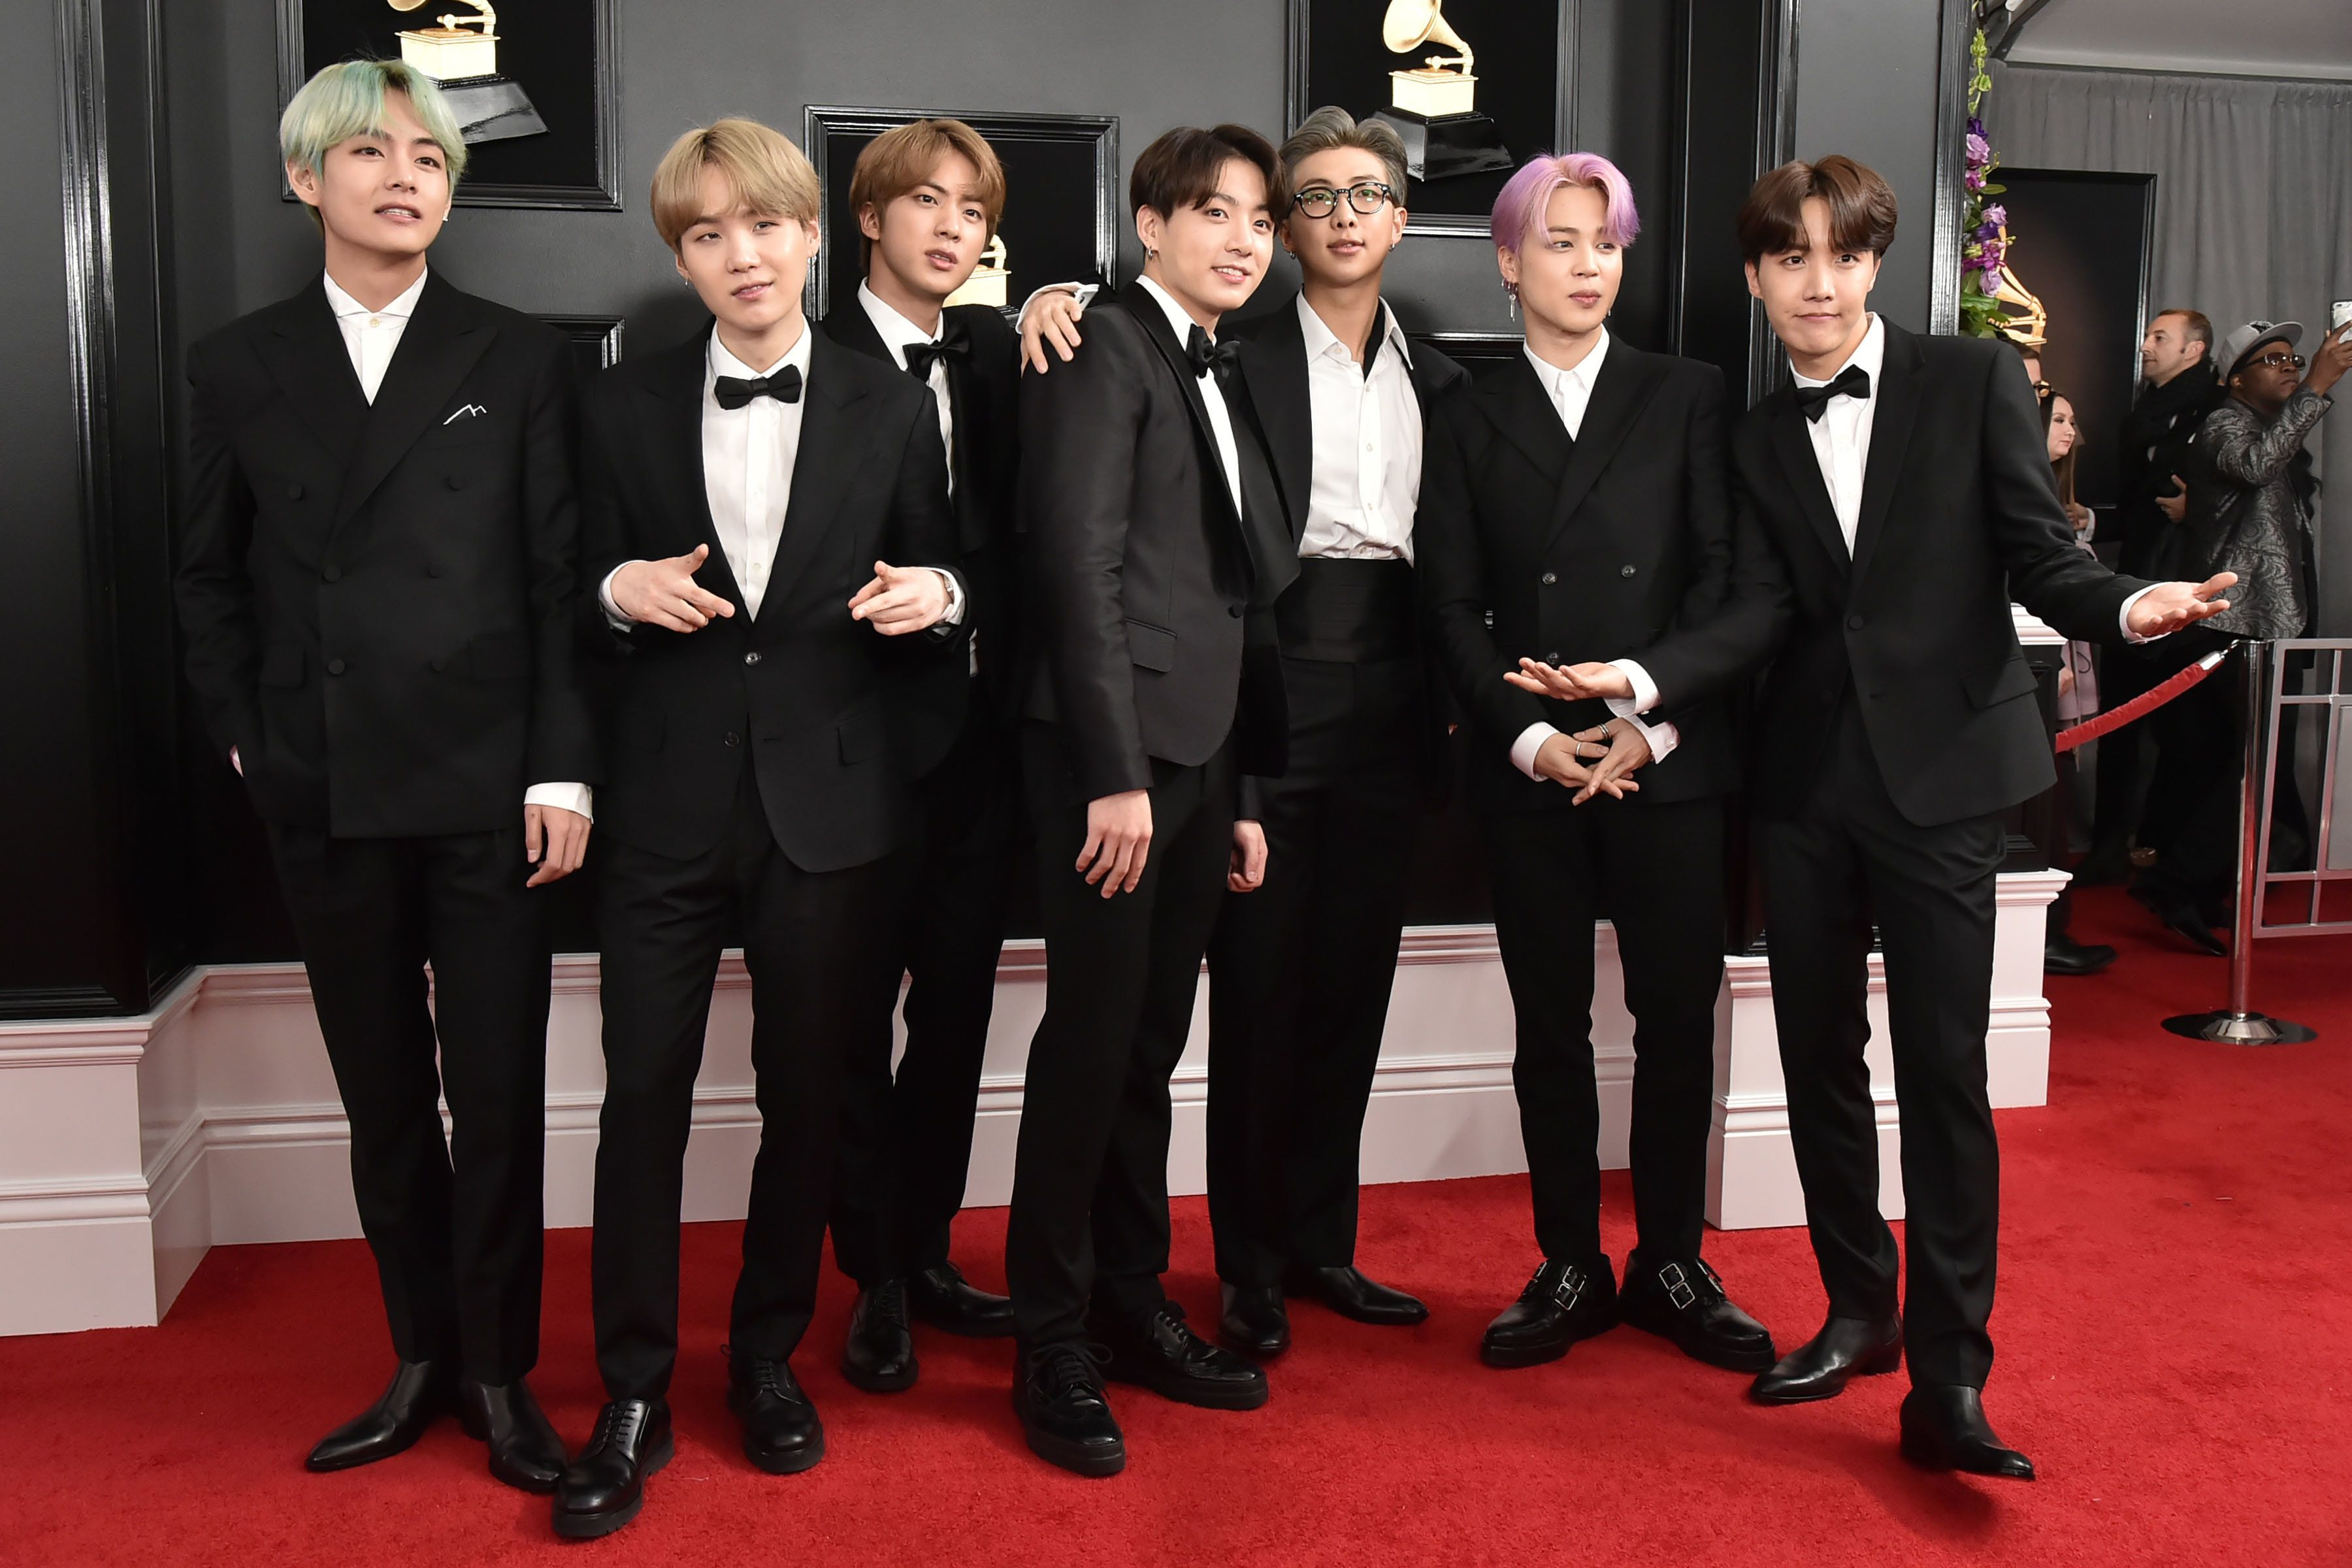 BTS at the Grammy Awards in Los Angeles on Feb. 10. The group became the first Korean act to attend and appear onstage at the